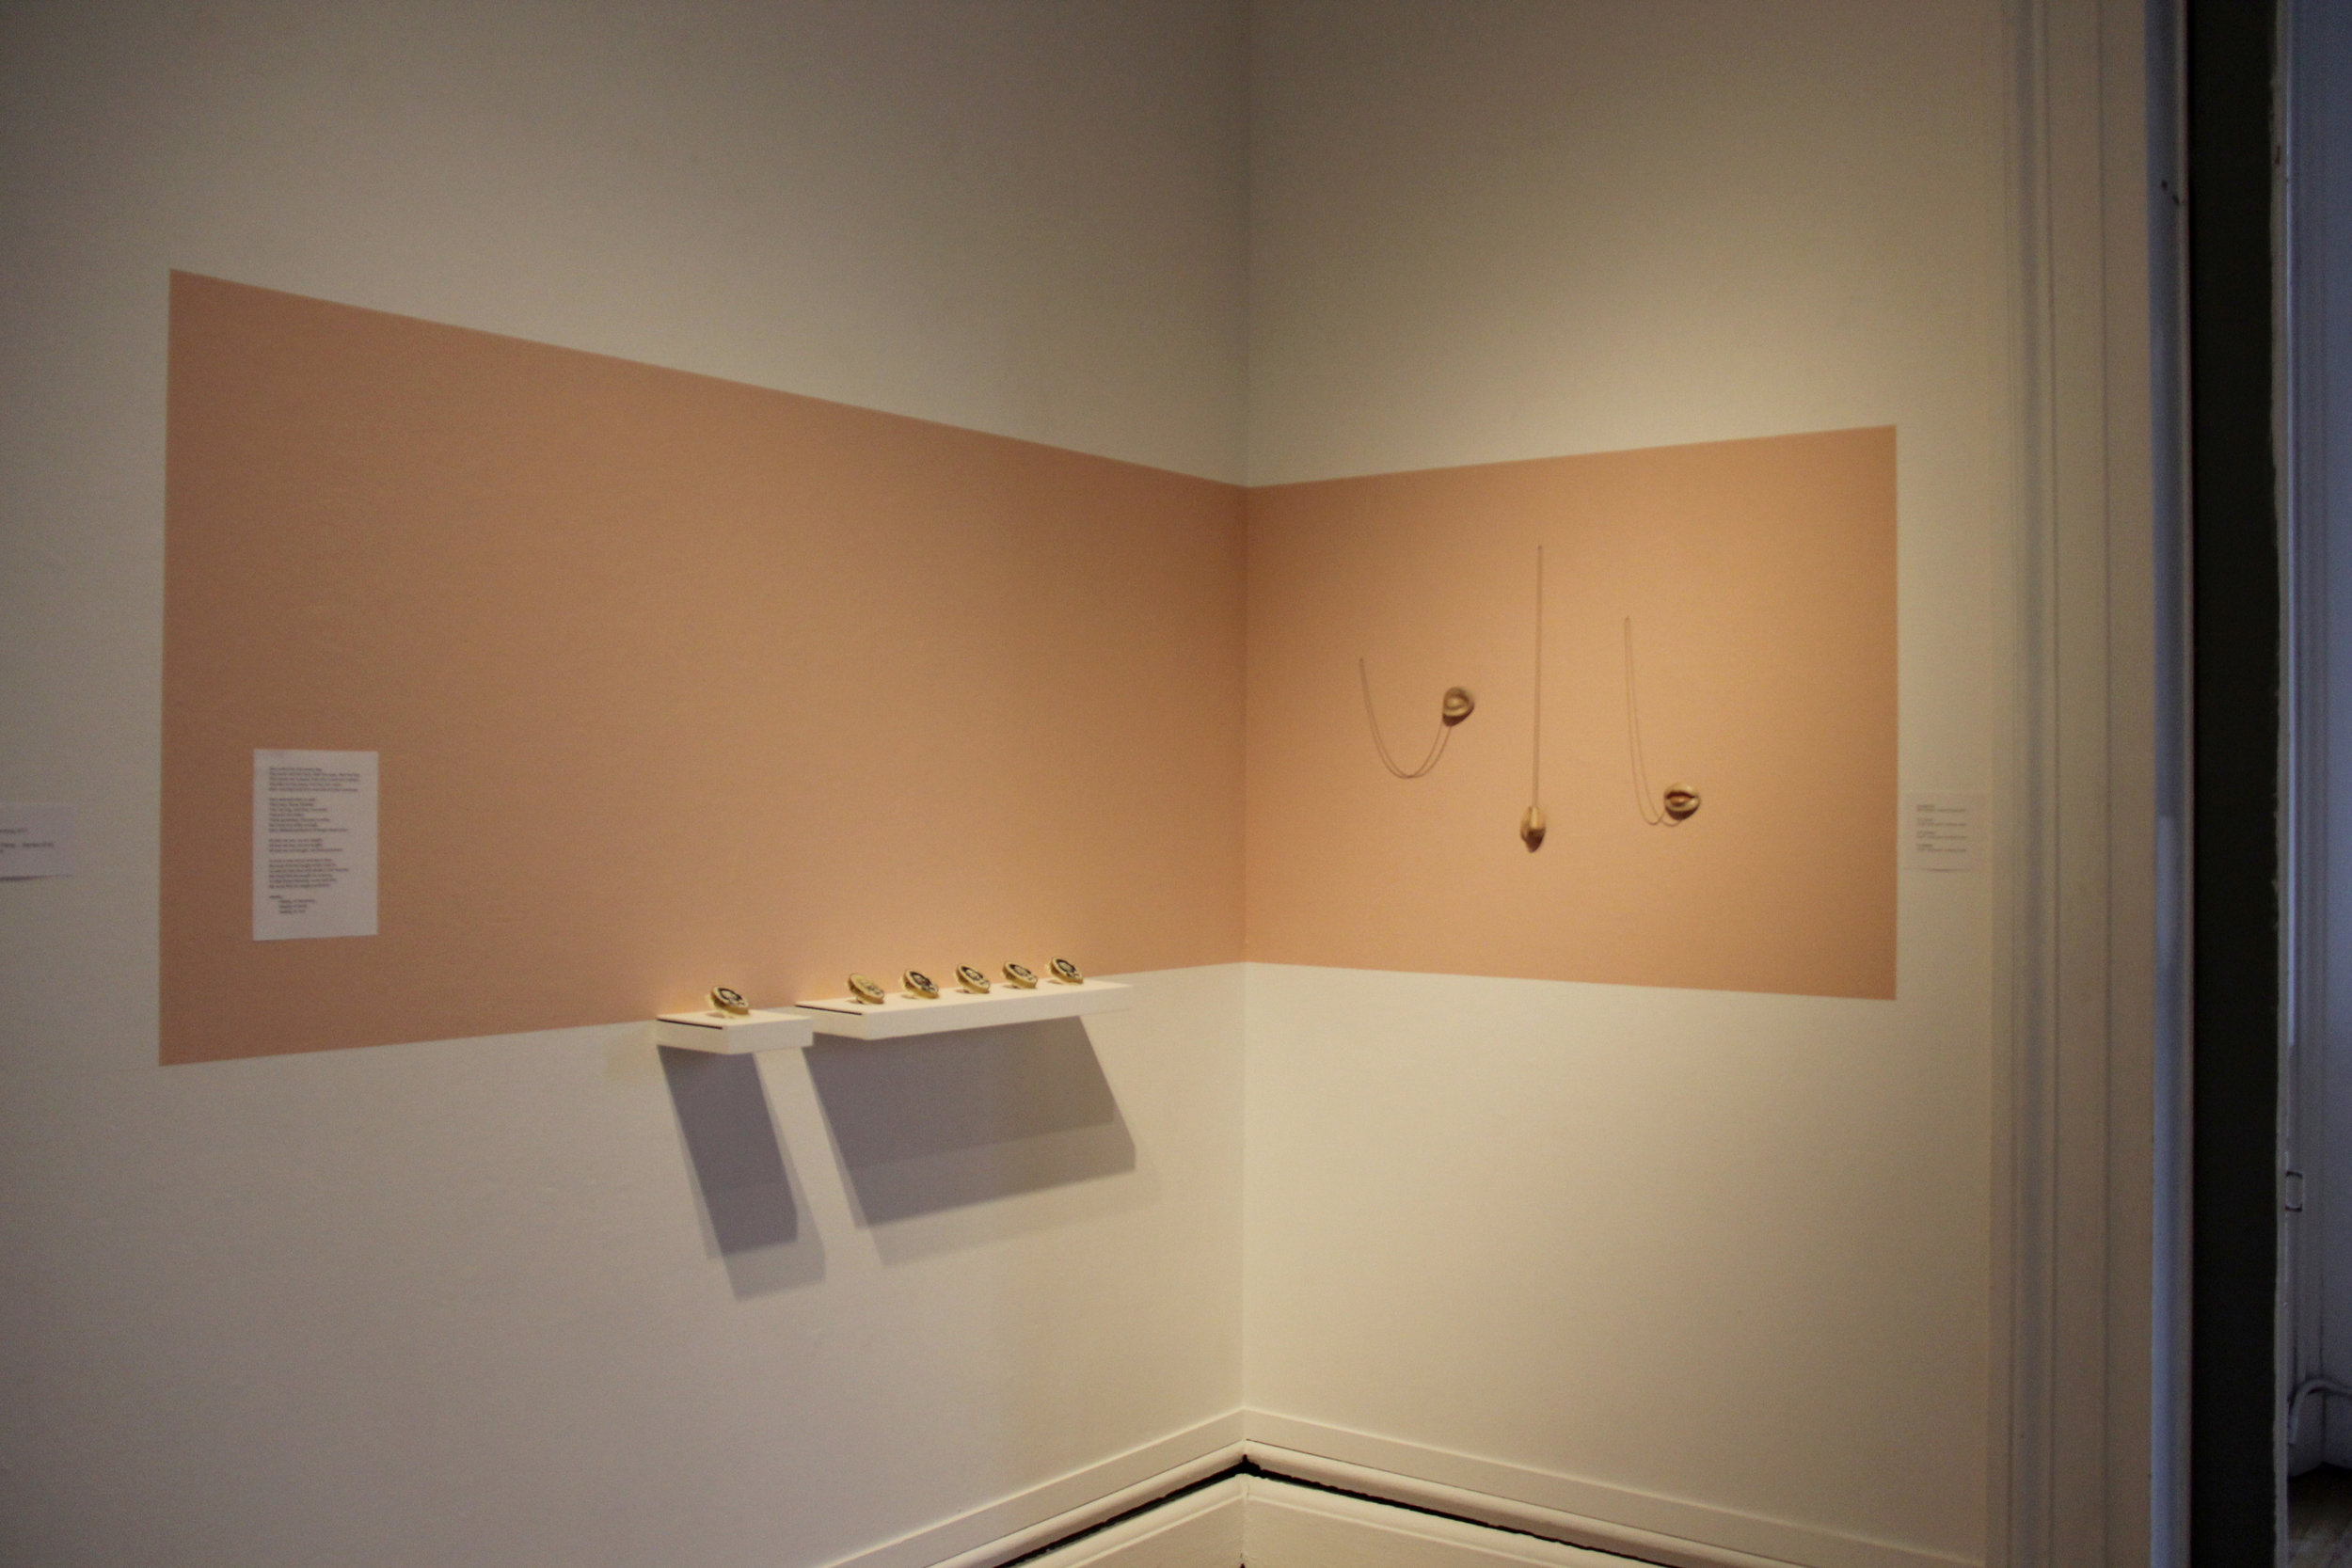 Woods-Gerry Gallery, Providence RI (April 27-May 2)